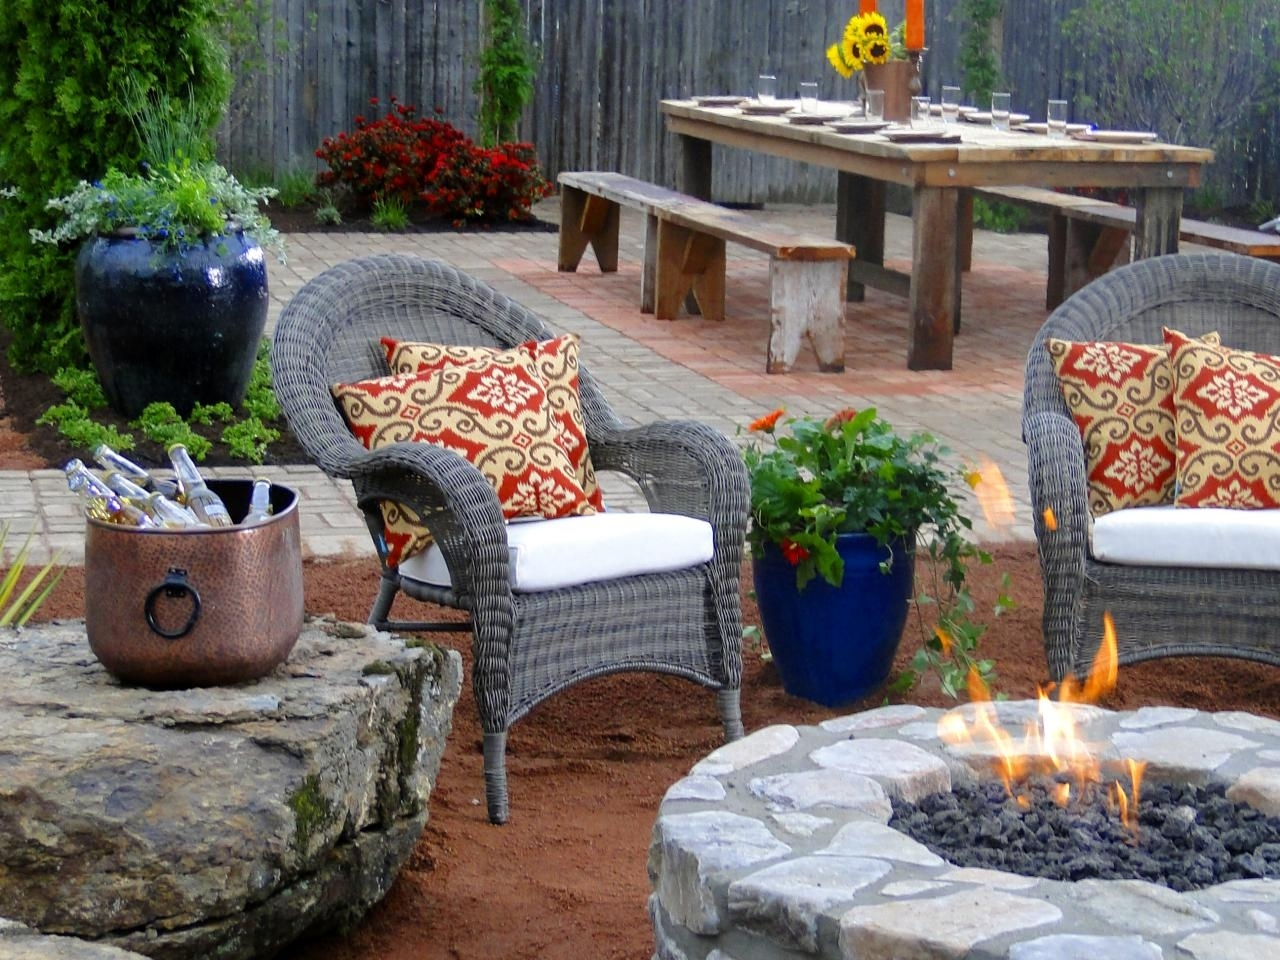 10 Fashionable Homemade Outdoor Fire Pit Ideas %name 2021